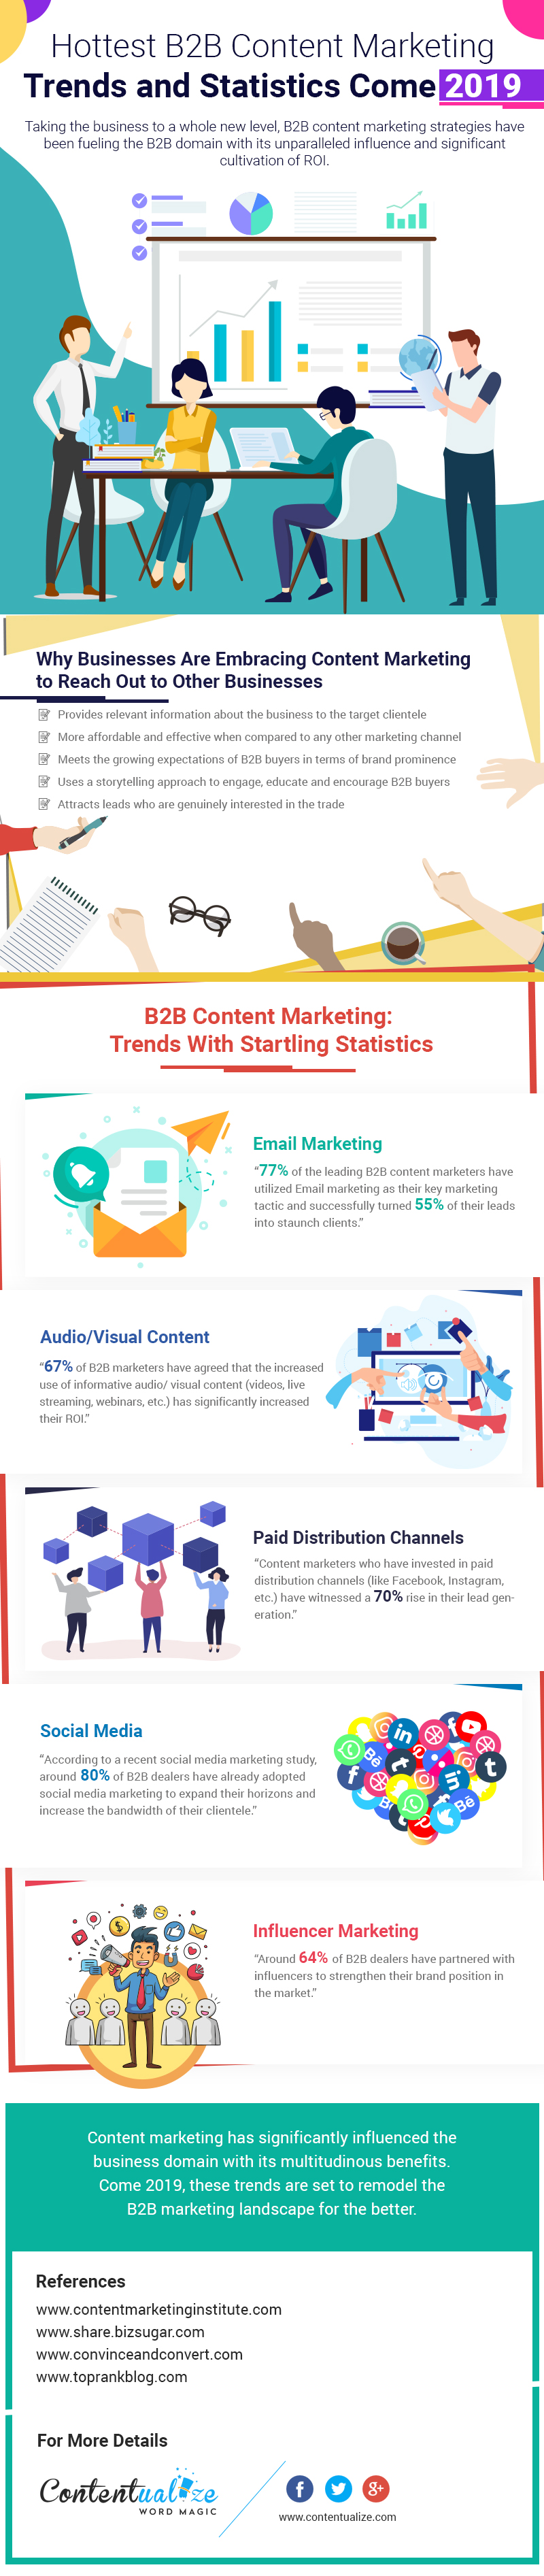 Hottest B2B Content Marketing Trends and Statistics in 2019 - Hottest B2B Content Marketing Trends and Statistics in 2019